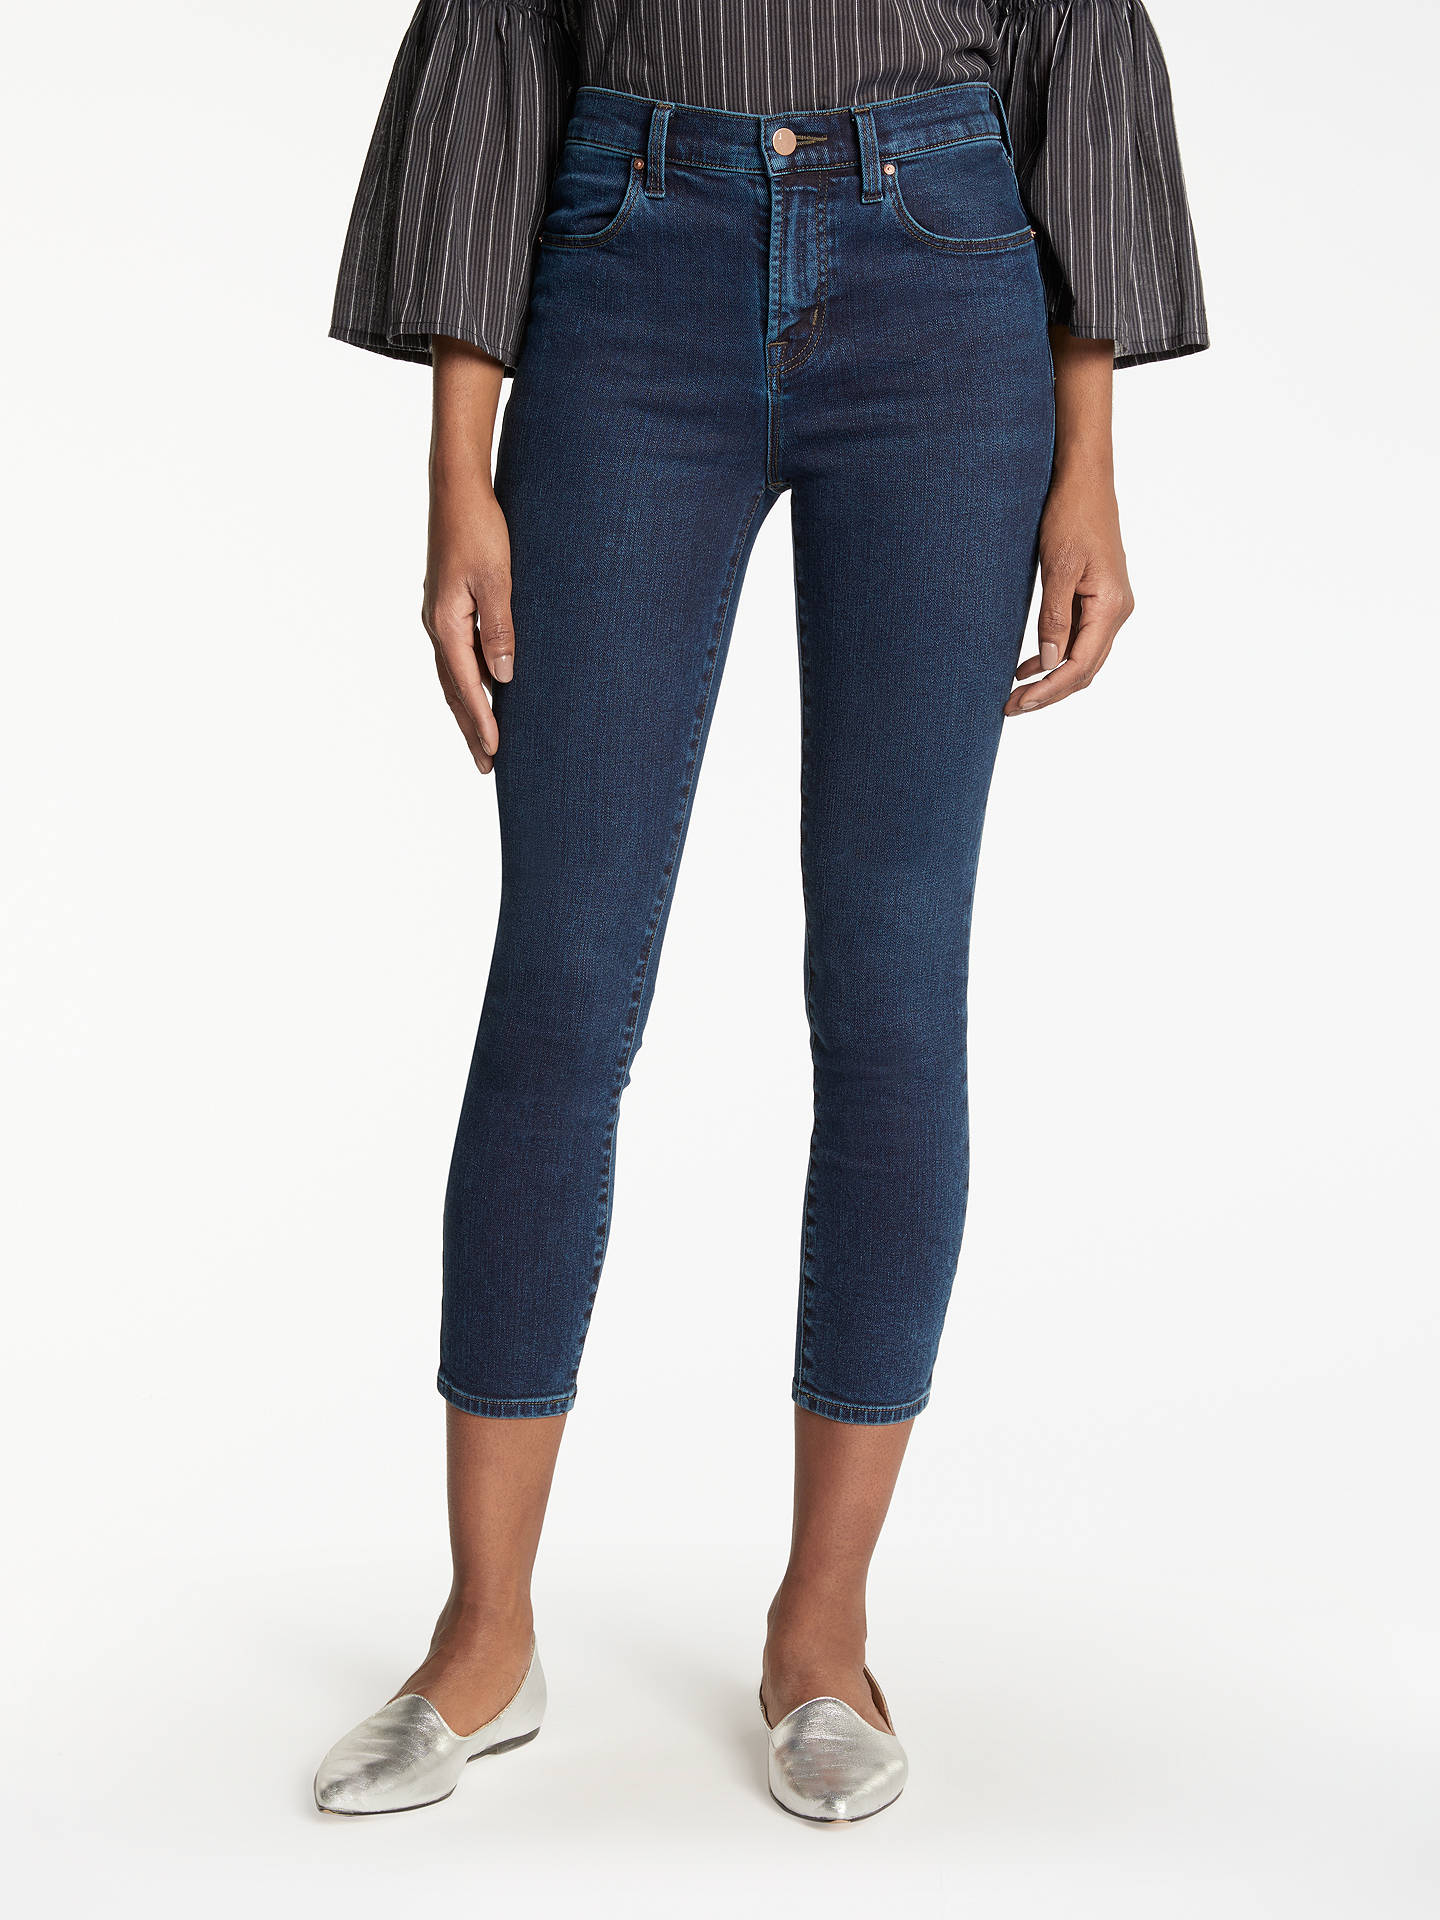 151189e3c2d0 Buy J Brand Alana High Rise Cropped Super Skinny Jeans, Throne, 24 Online  at ...